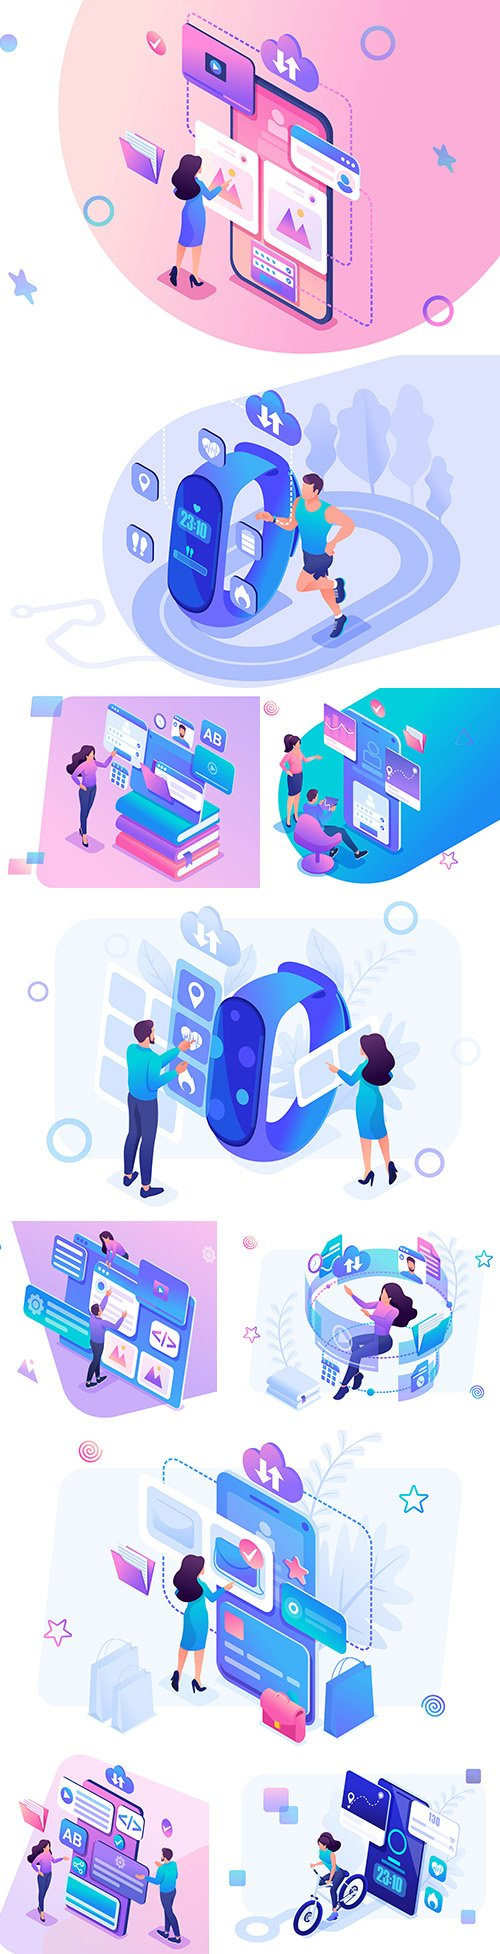 Isometric 3d illustration young people working on app